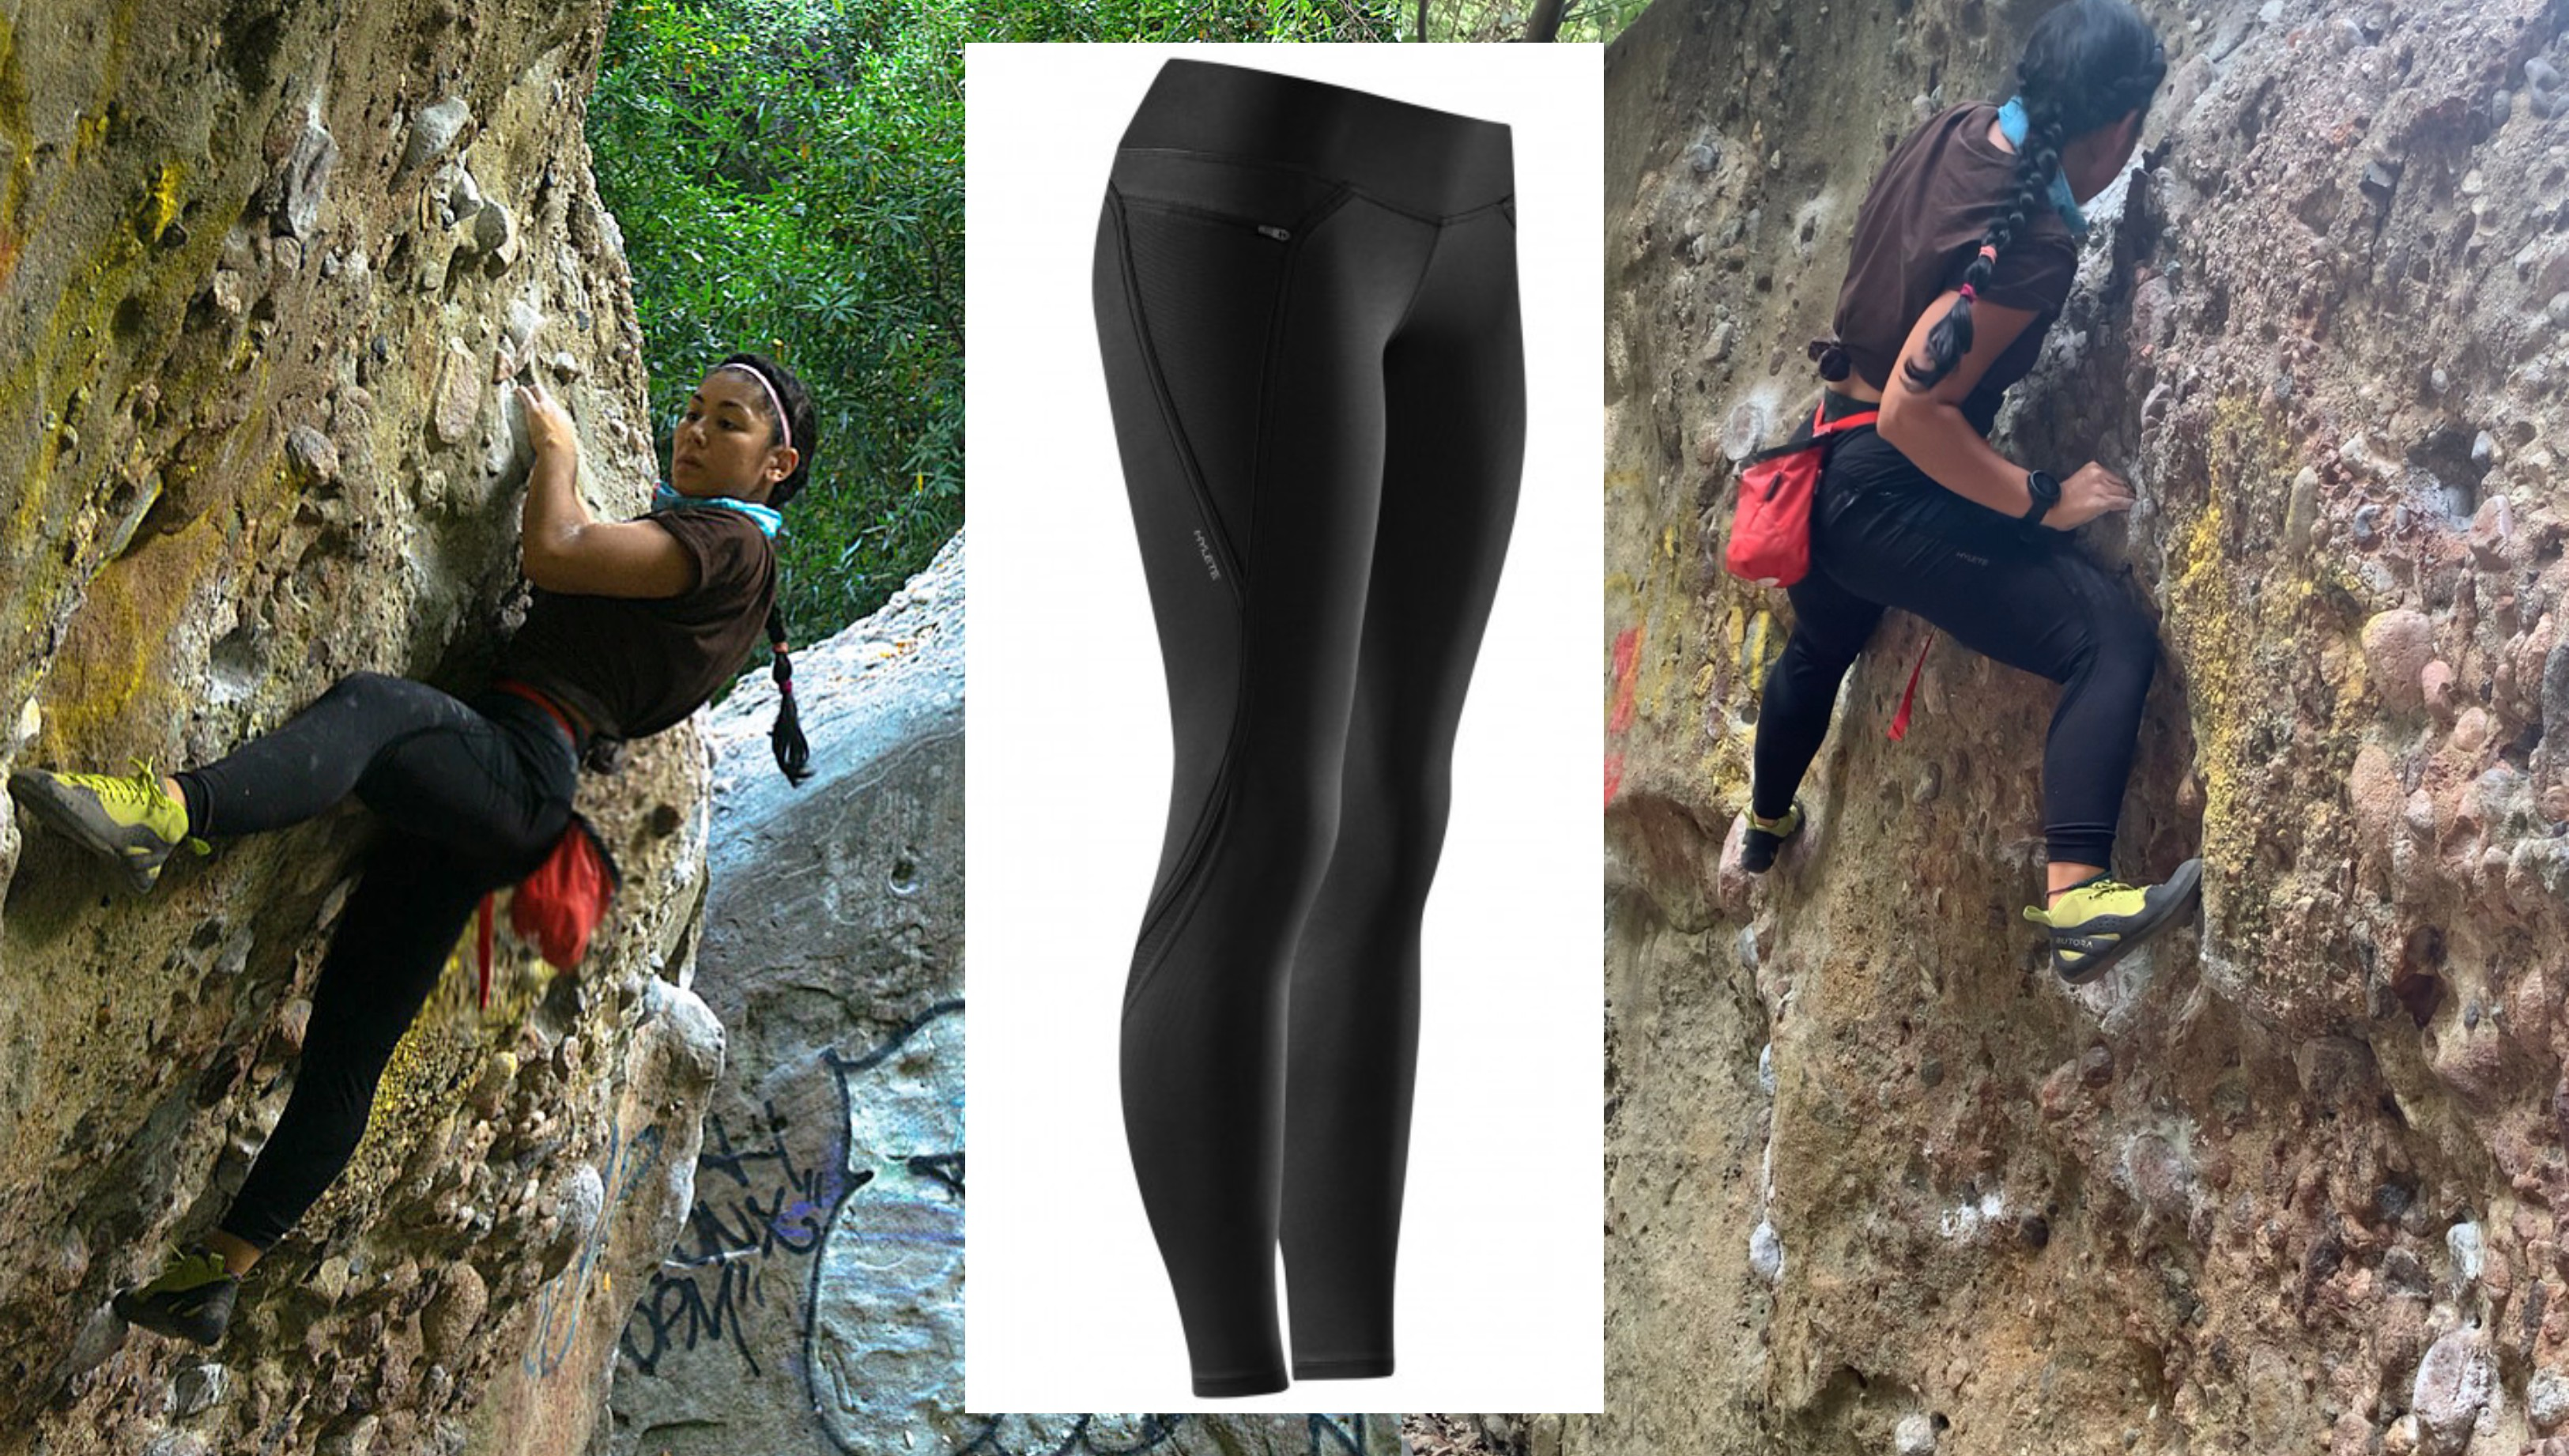 hylete, numbus tight pants, pamela price, bouldering, rock climbing, apparel